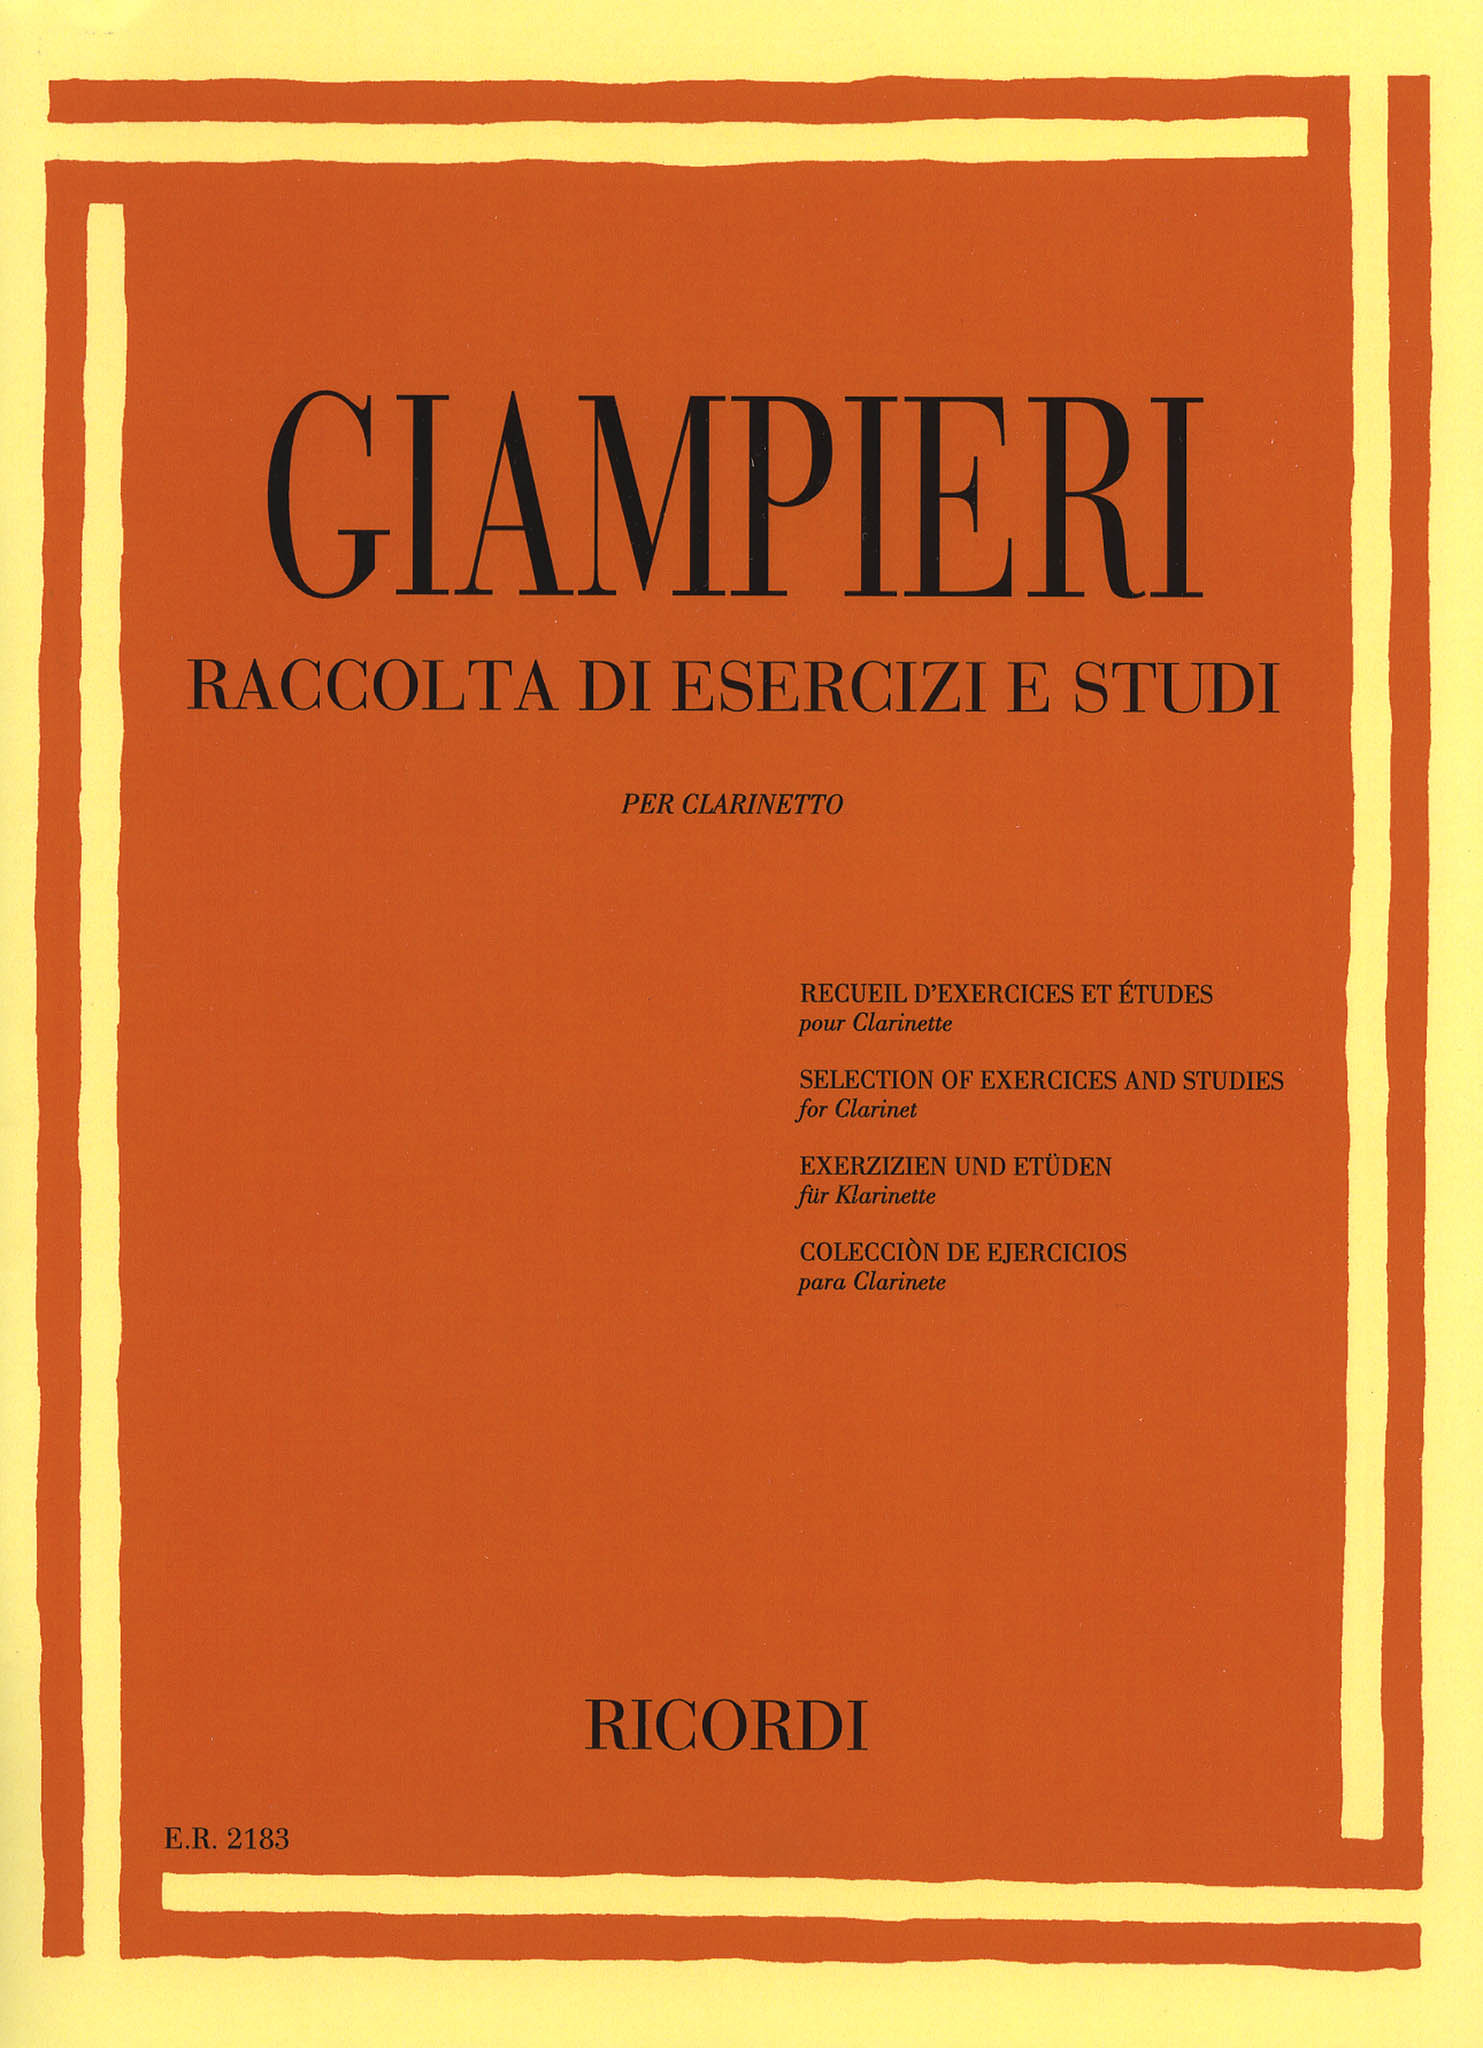 Selection of Exercises and Studies for Clarinet - Cover